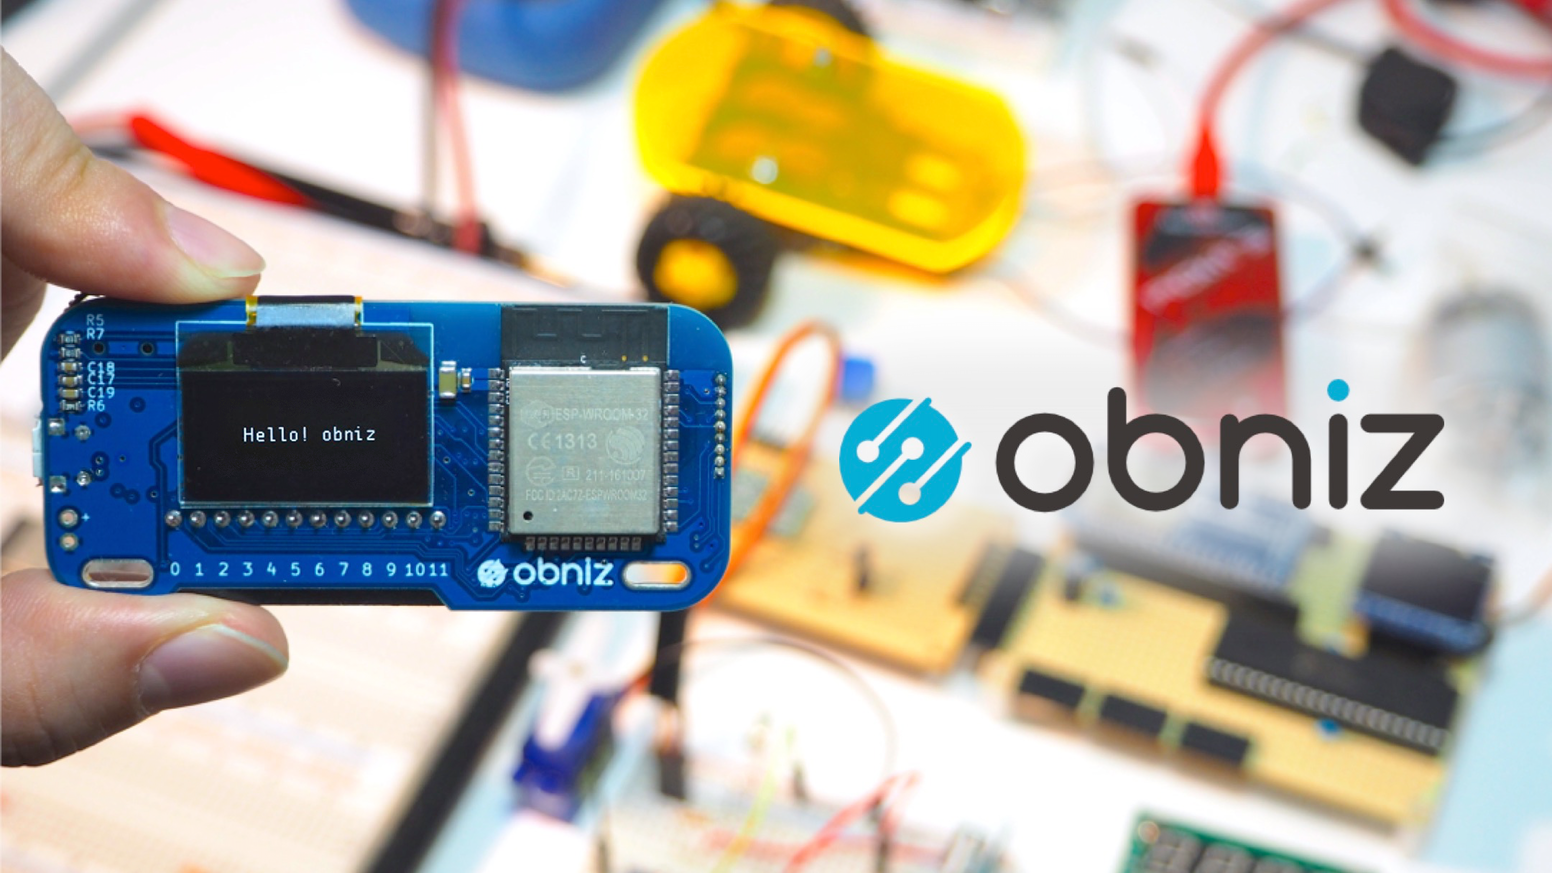 The World's first development board which is available as APIs on Cloud. Use obniz from your Html via Cloud.